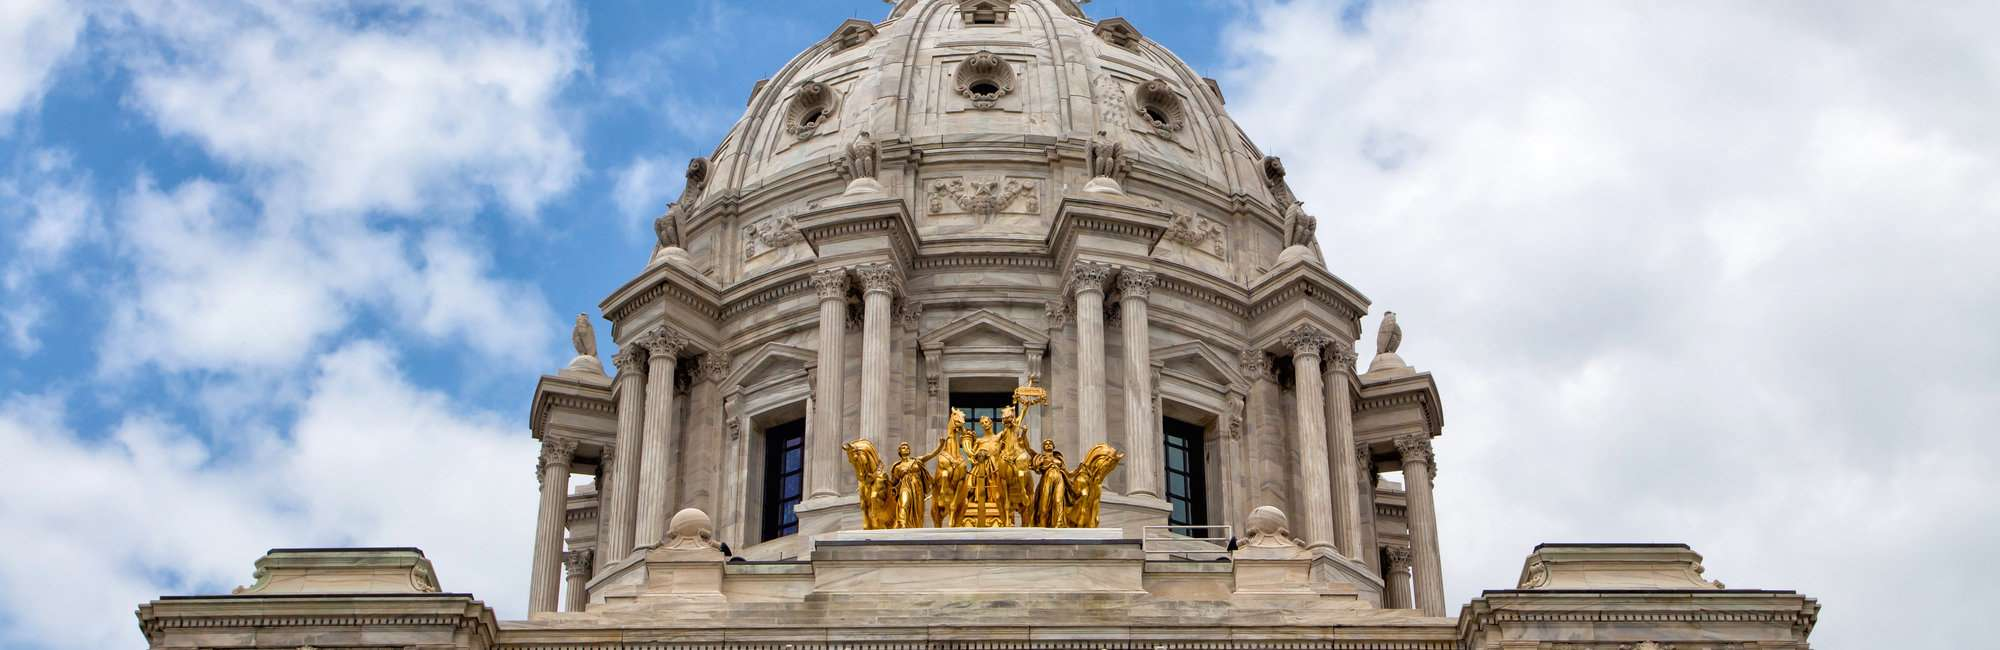 Minnesota State Capitol Building in St. Paul, Minnesota USA